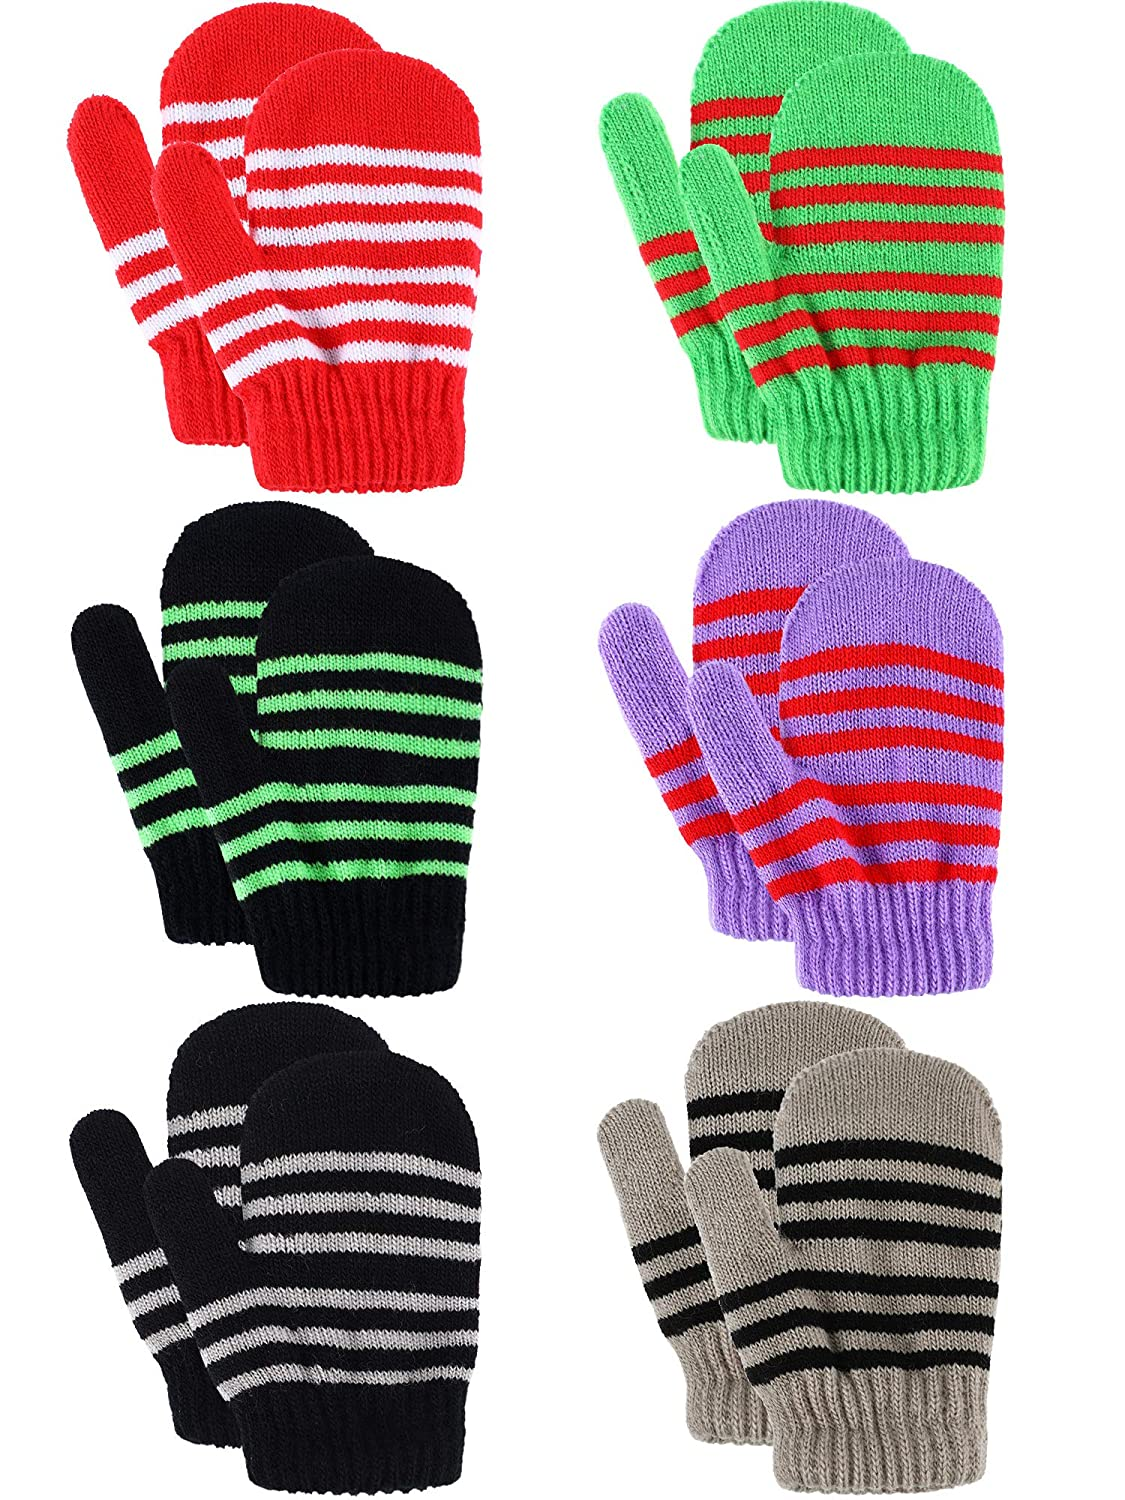 6 Pairs Kids Knit Mittens Toddler Stretch Gloves Winter Knitted Warm Mitten for Boys Girls Color Set 1